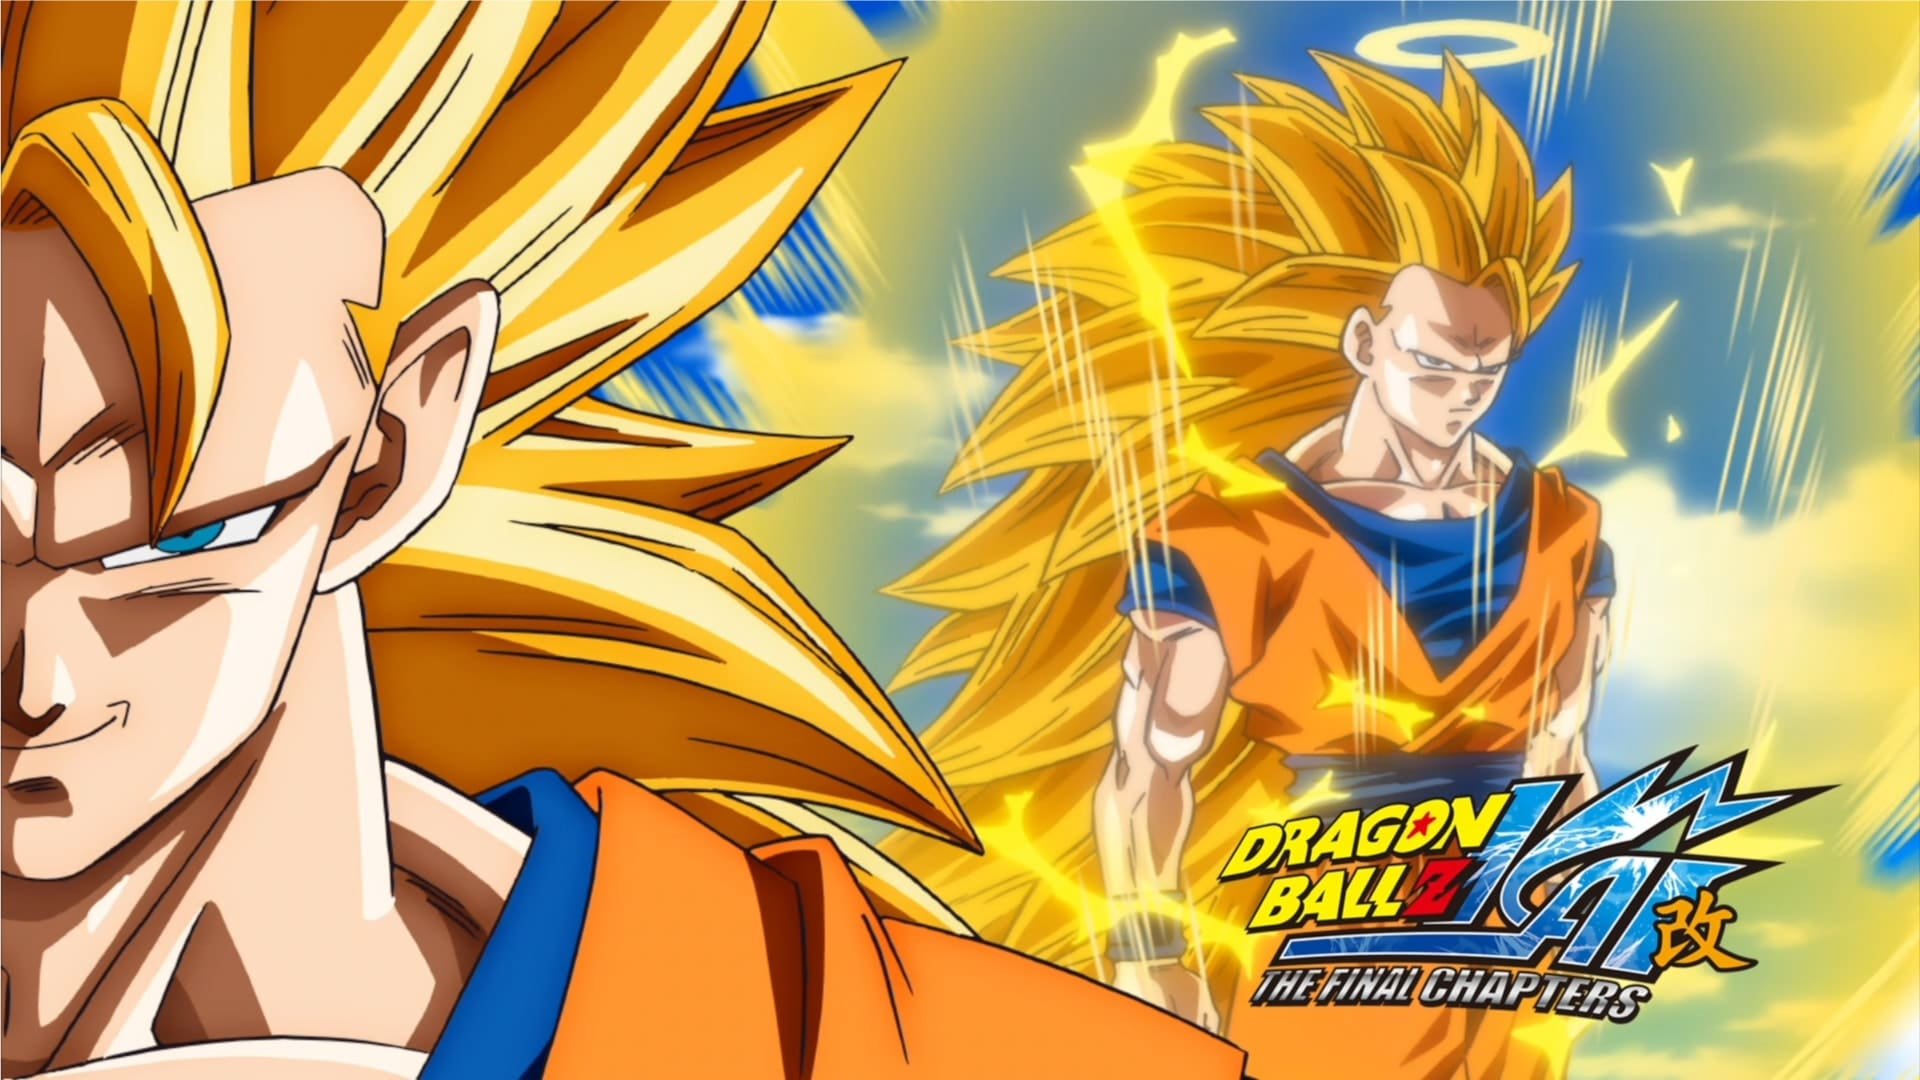 The best: dragon ball z ep 213 dublado online dating